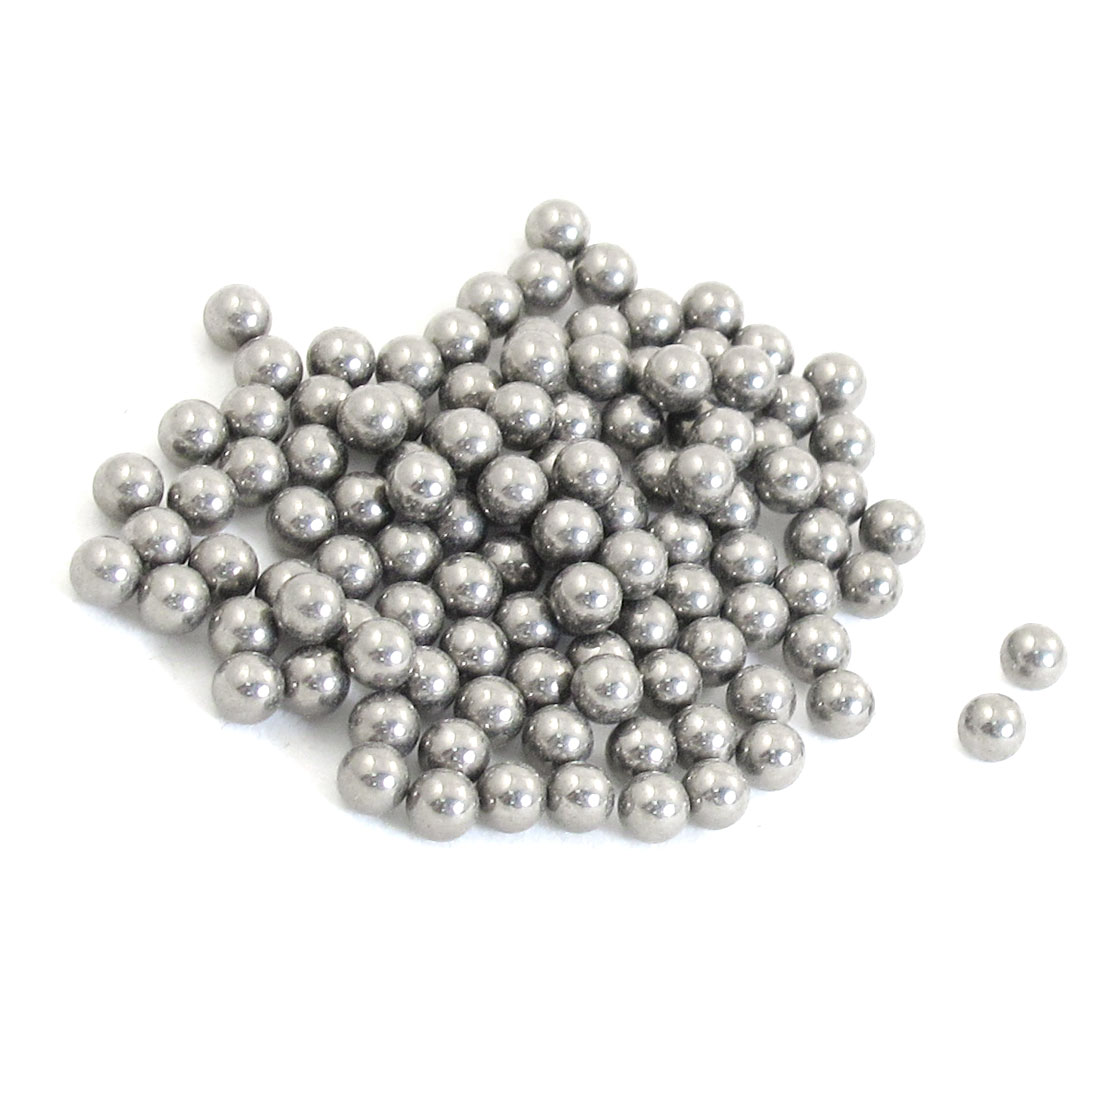 100 Pcs Replacing Parts 5mm Diameter Bike Bicyle Steel Ball Bearing